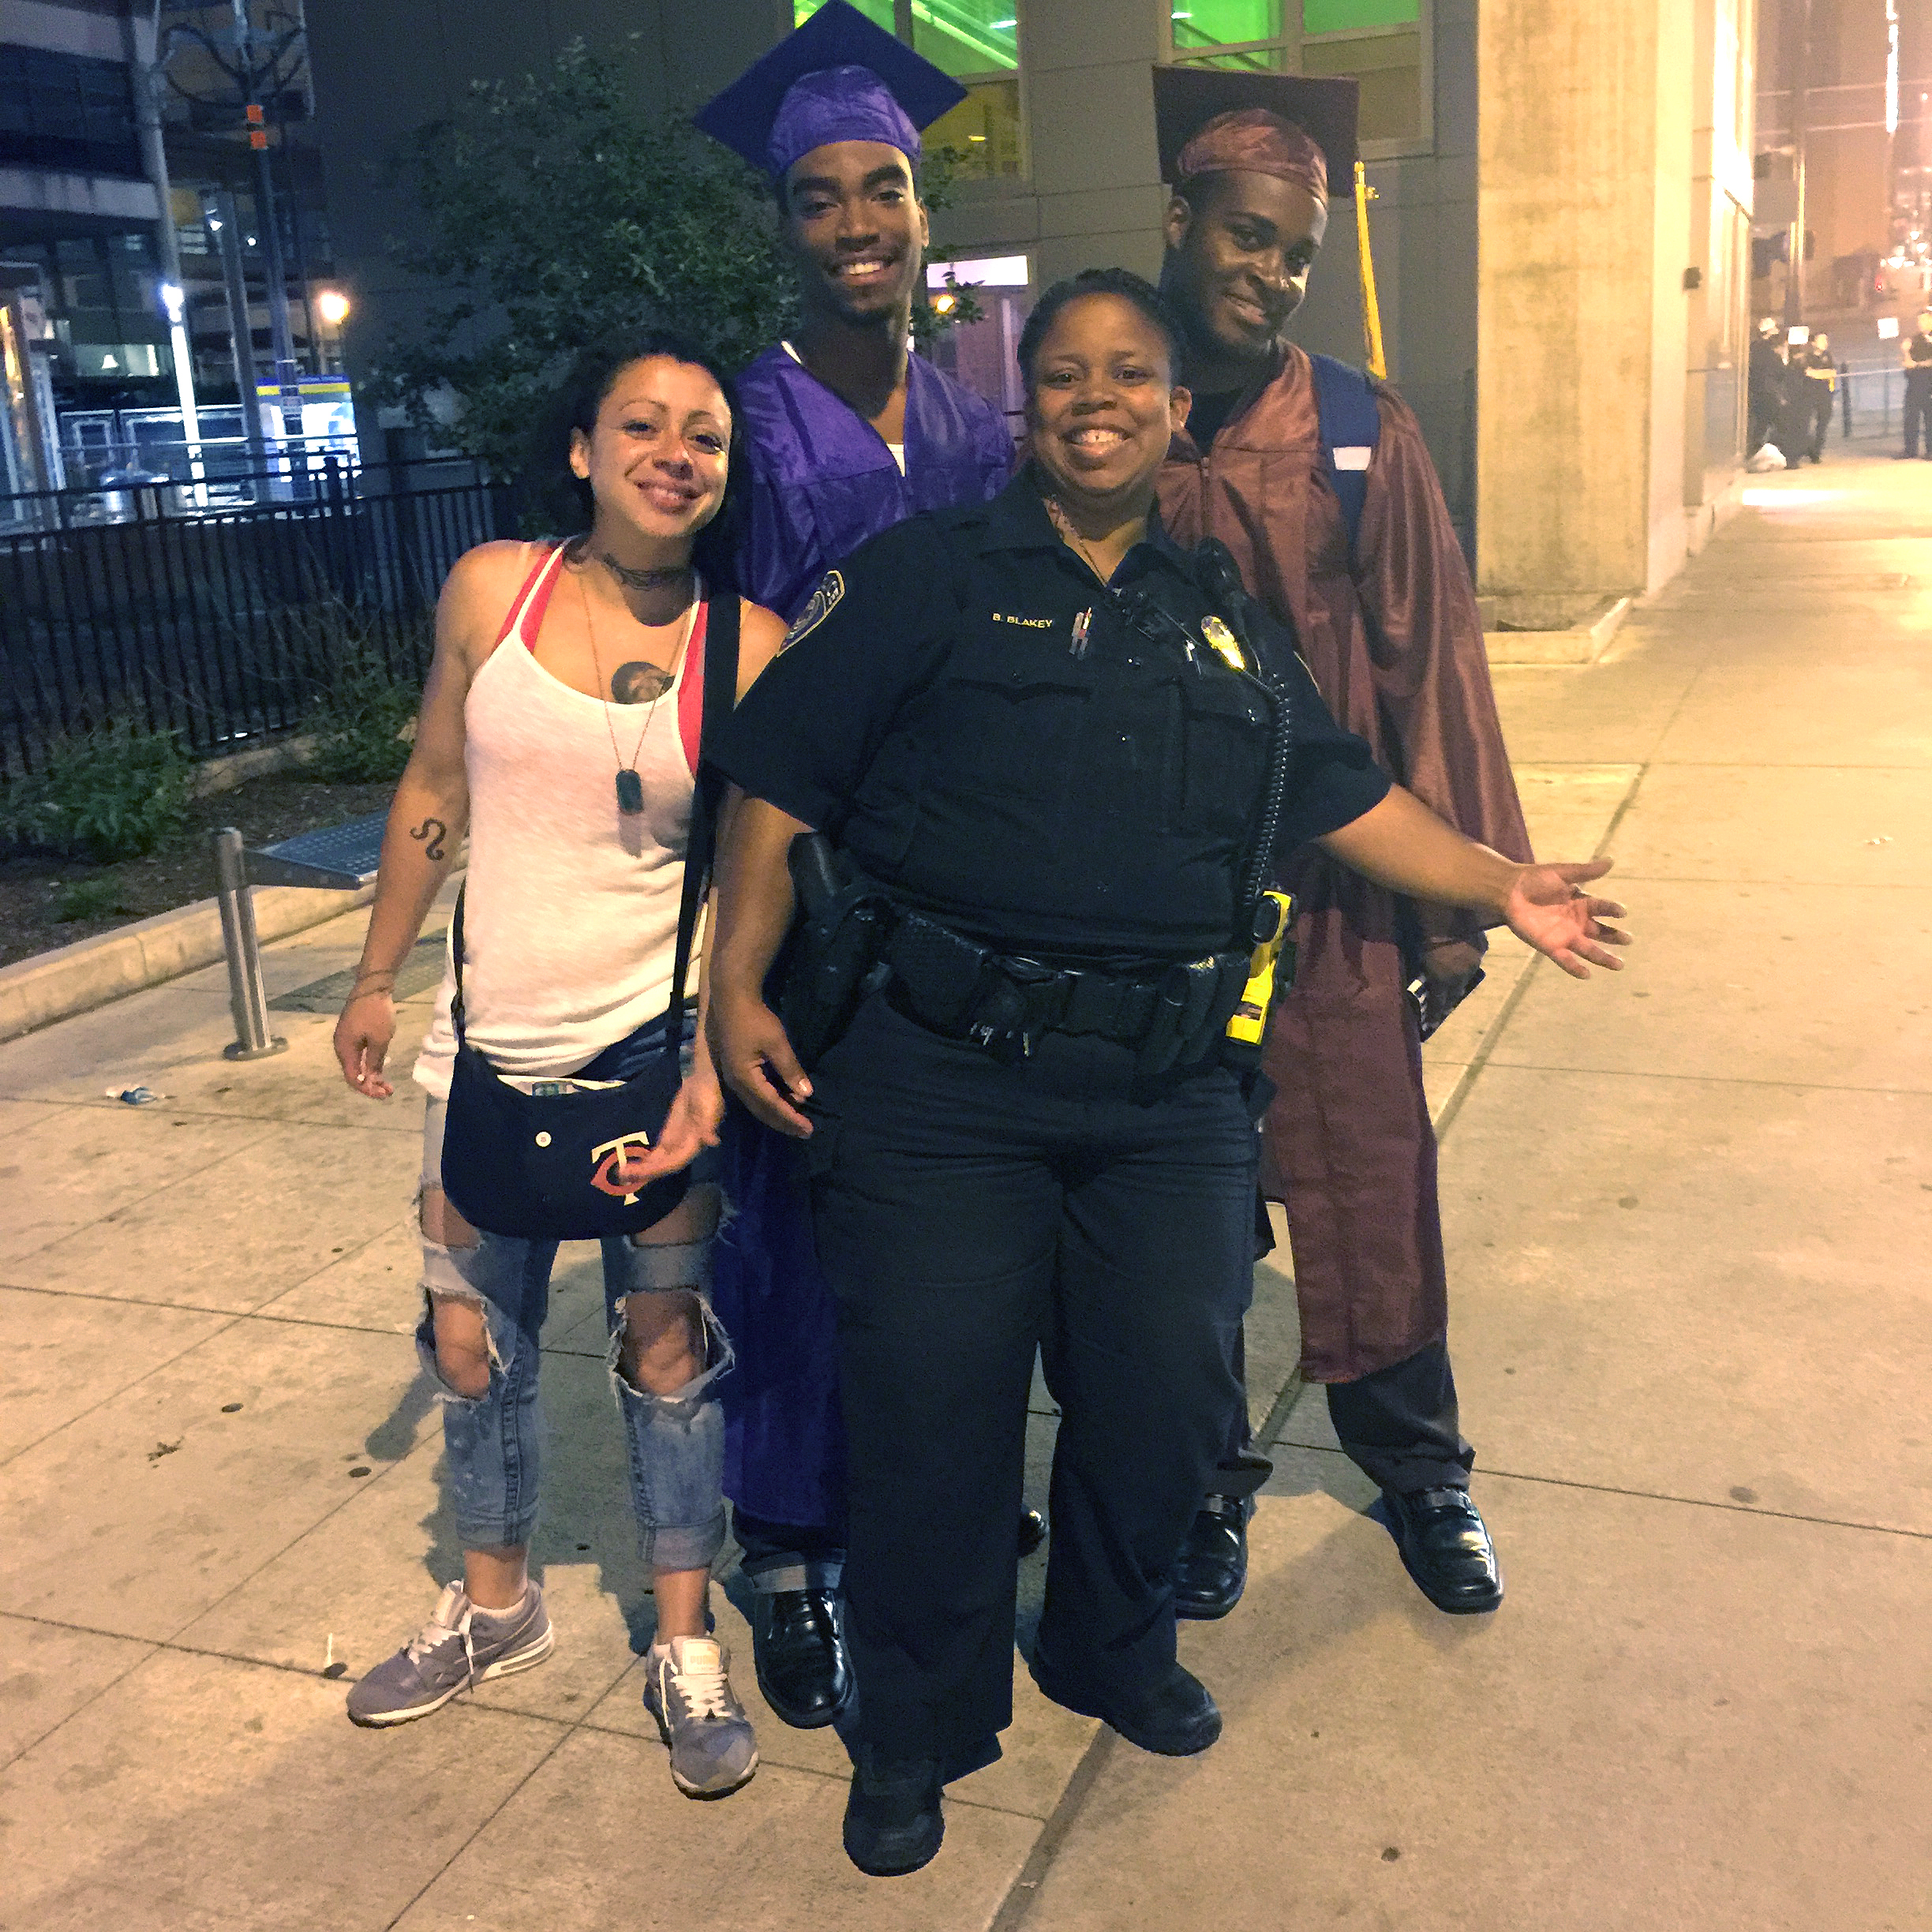 Metro Transit officer Brooke Blakey with participants in the department's Youth Diversion Program.